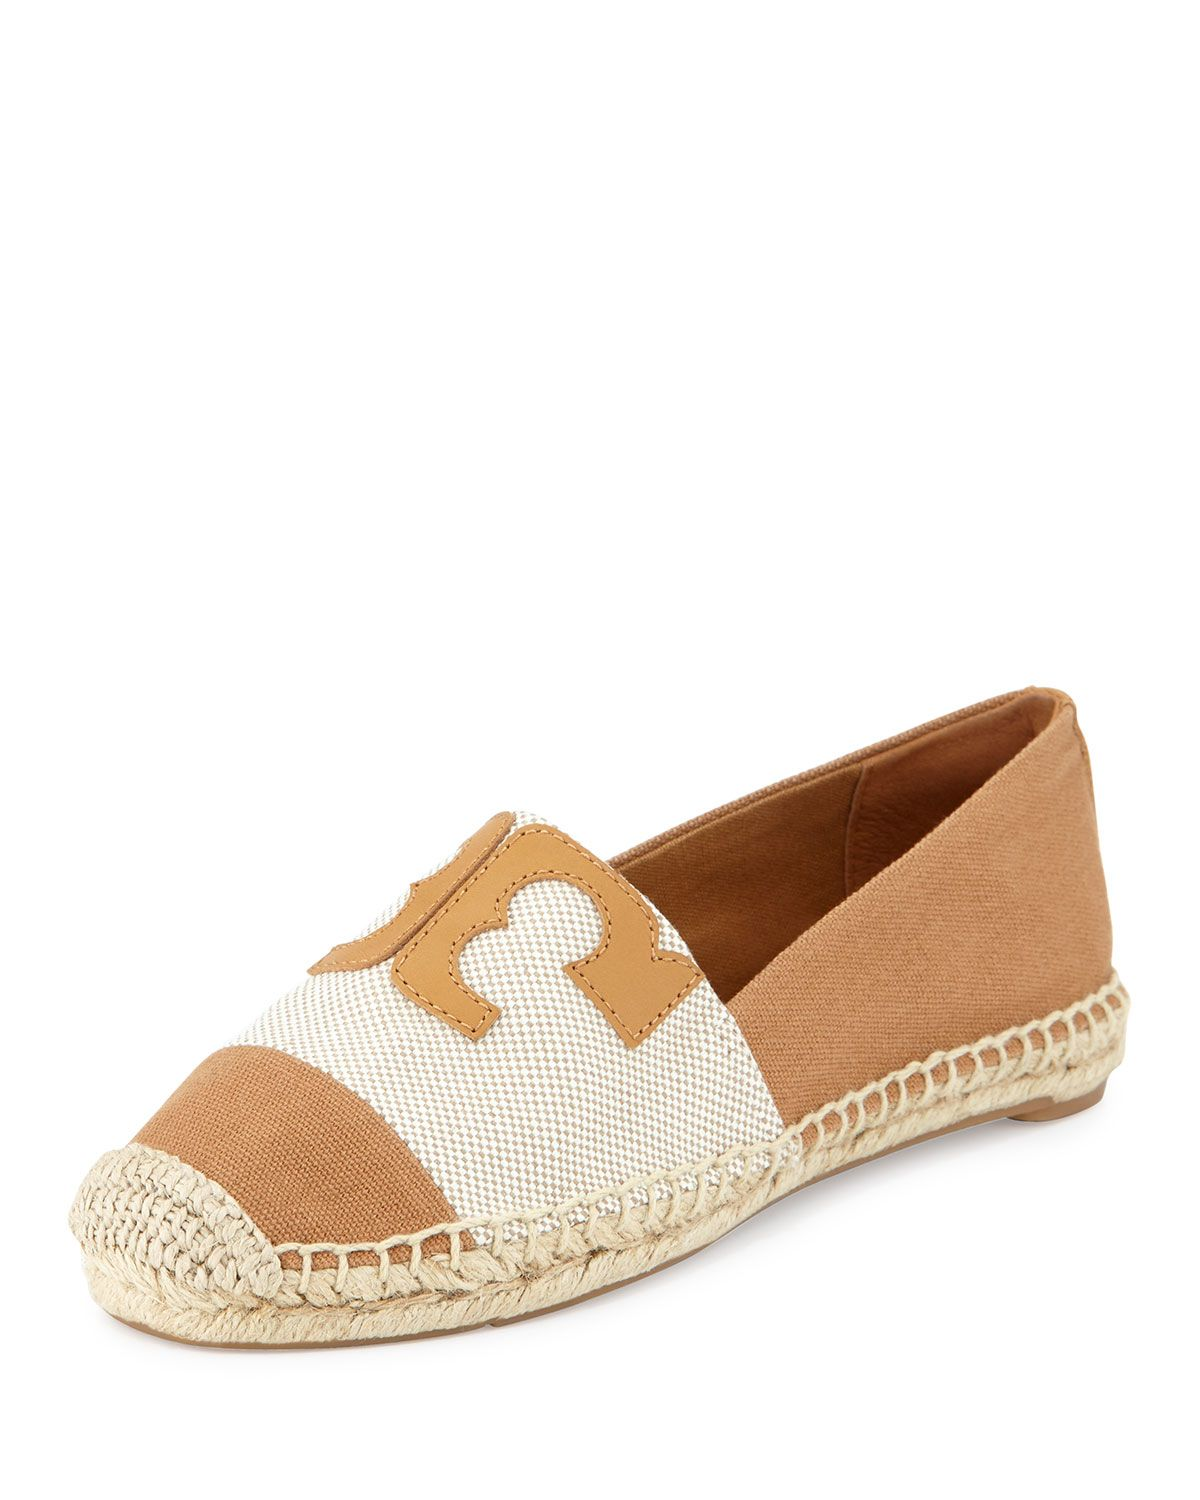 Tory Burch Woman Embroidered Lace-up Canvas Espadrilles Red Size 7.5 Tory Burch Buy Cheap Browse Discount Inexpensive NzJOMvjwV